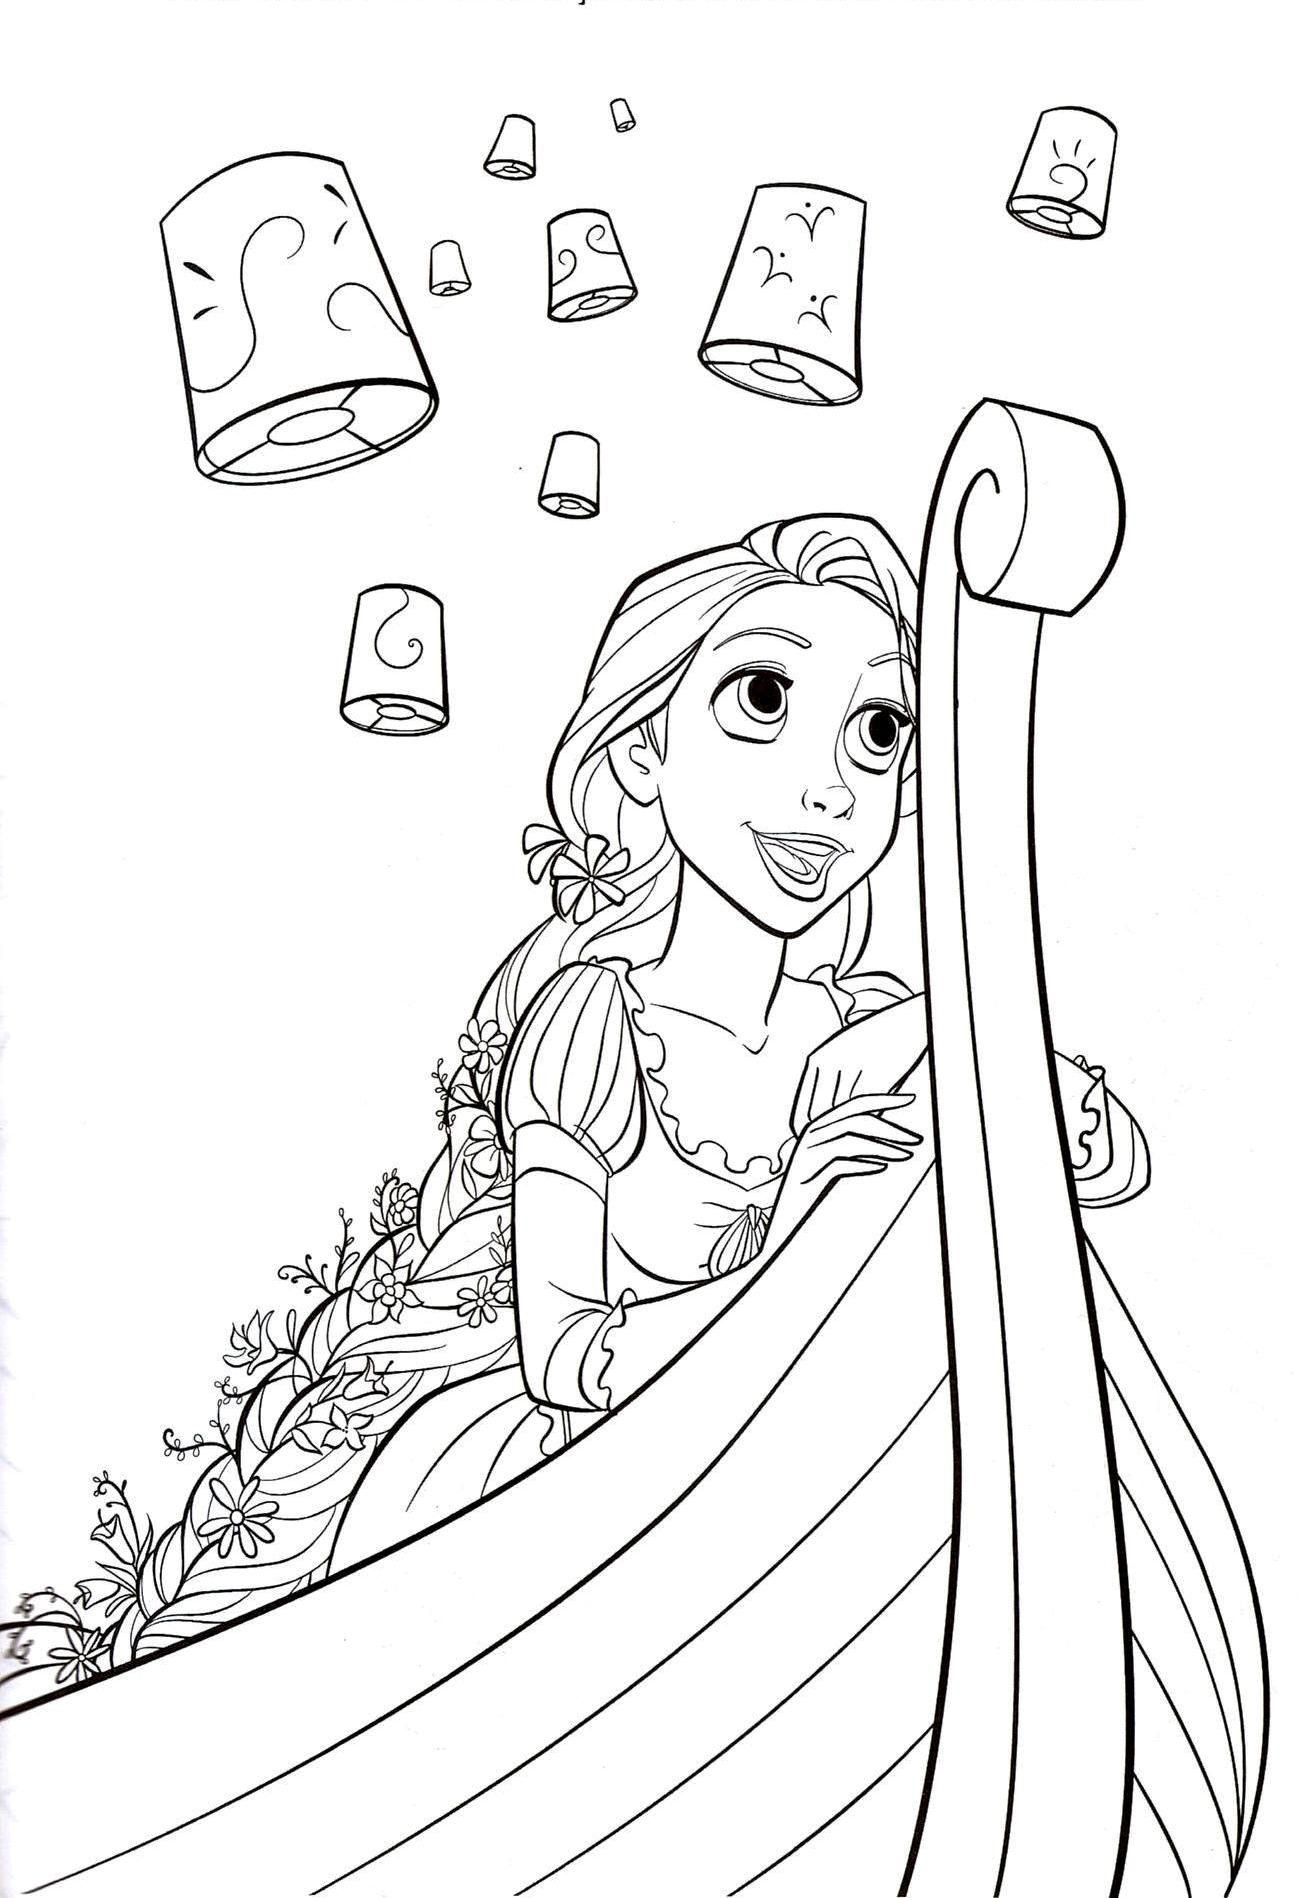 Printable coloring pages tangled - Disney Rapunzel Coloring Pages Free Printable Disney Princess Tangled Rapunzel Colouring Pages Coloring Page Kids